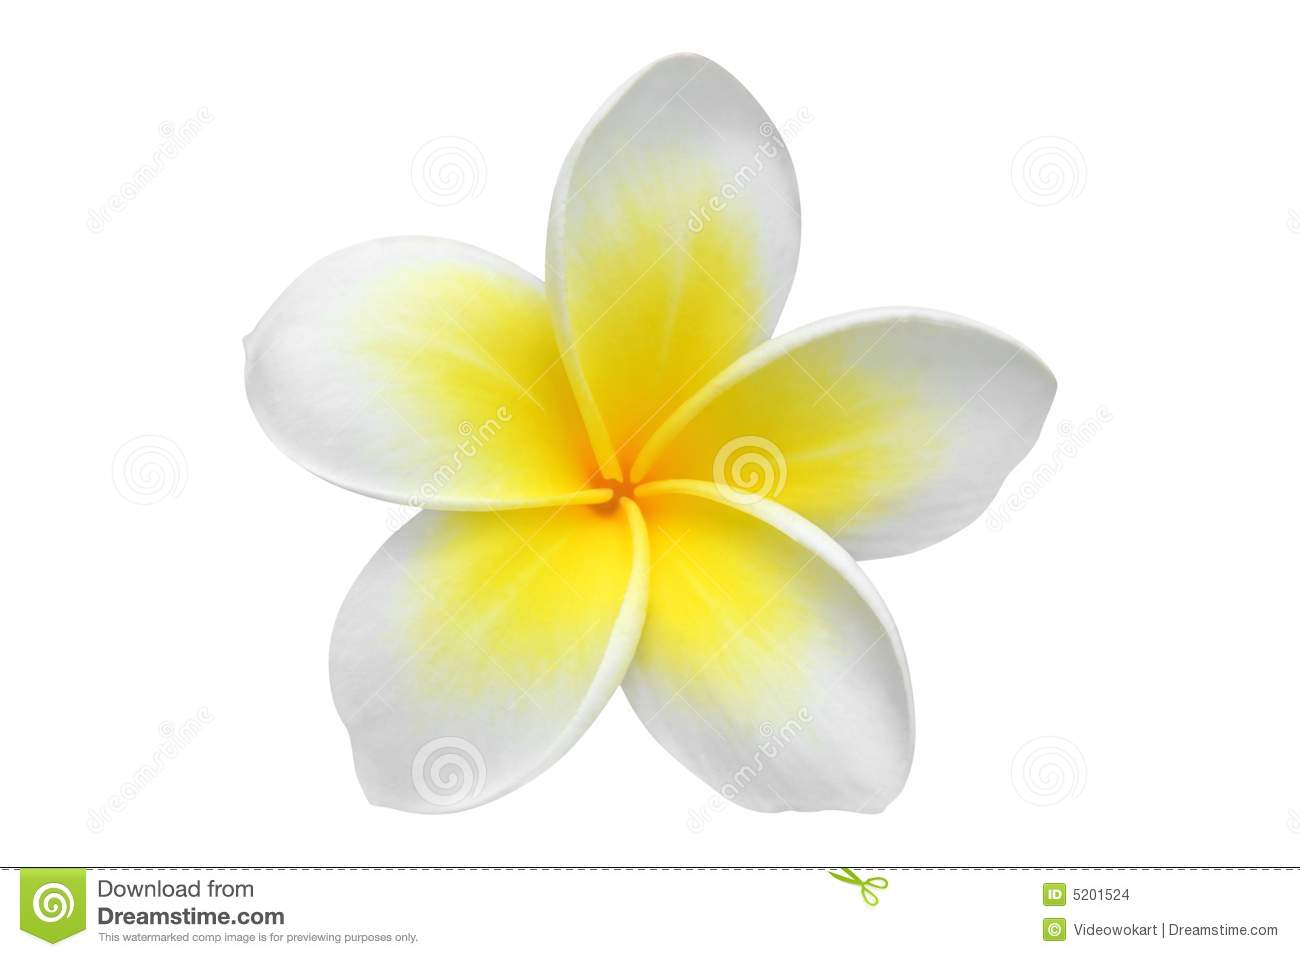 Frangipani clipart #7, Download drawings